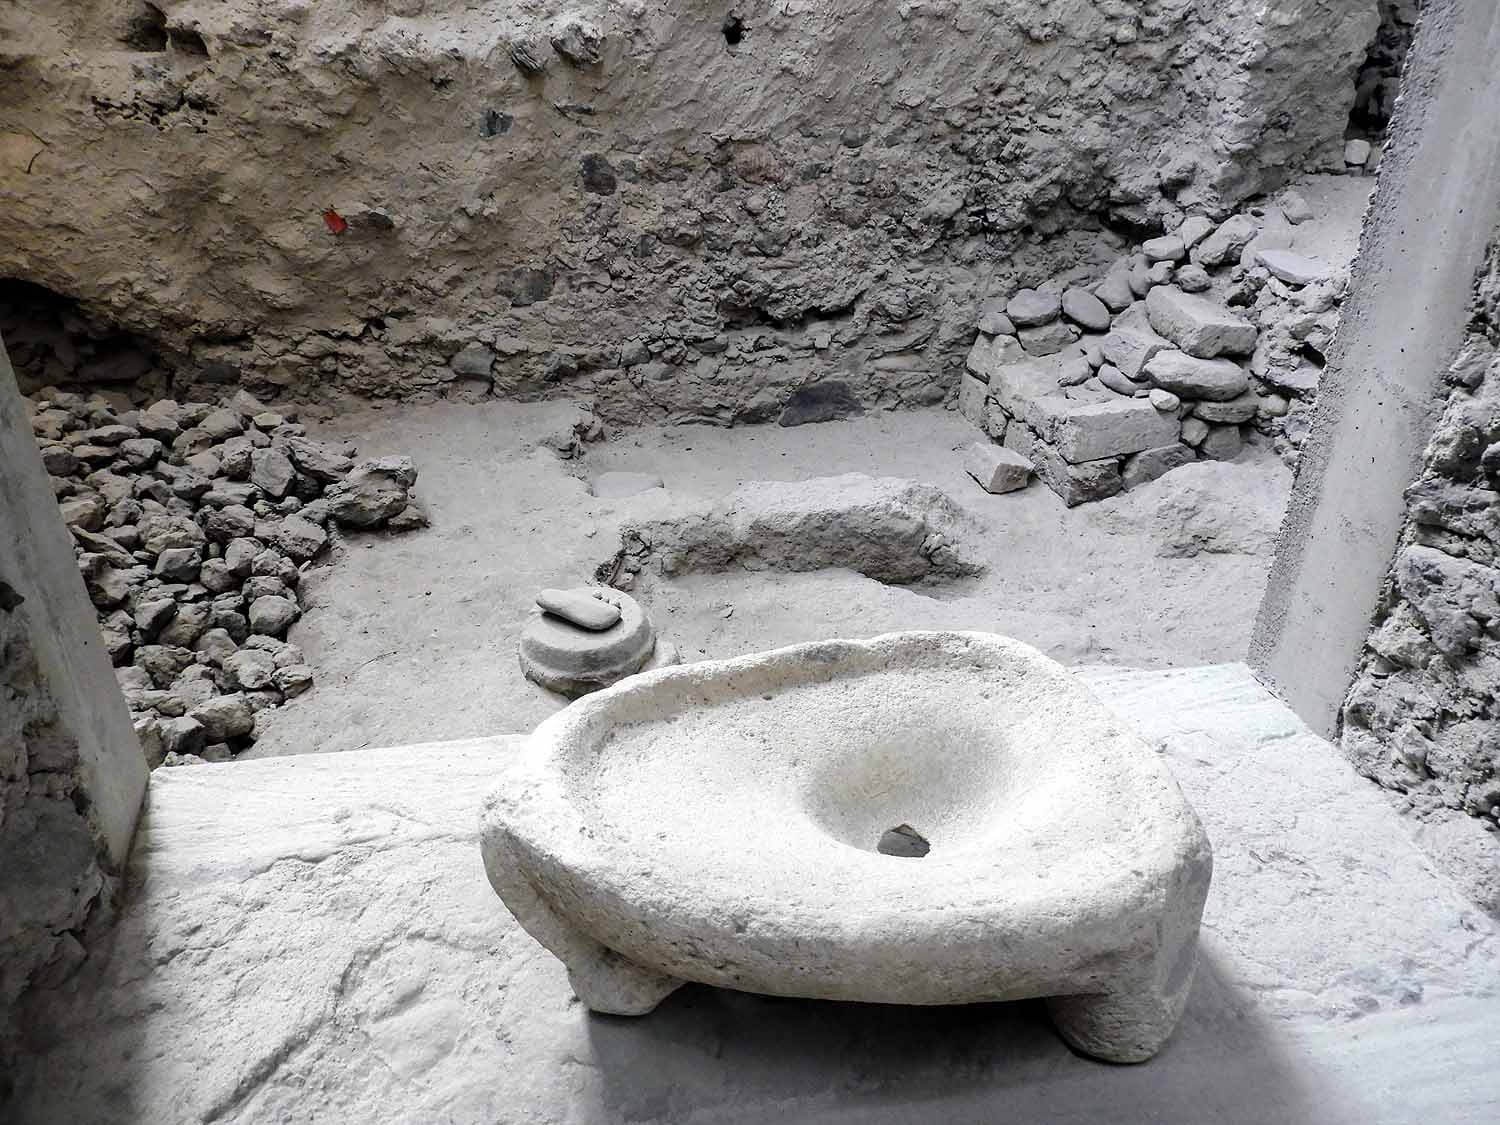 greece-santorini-akrotiri-ruins-excavation-musuem-archeology-mortar.jpg